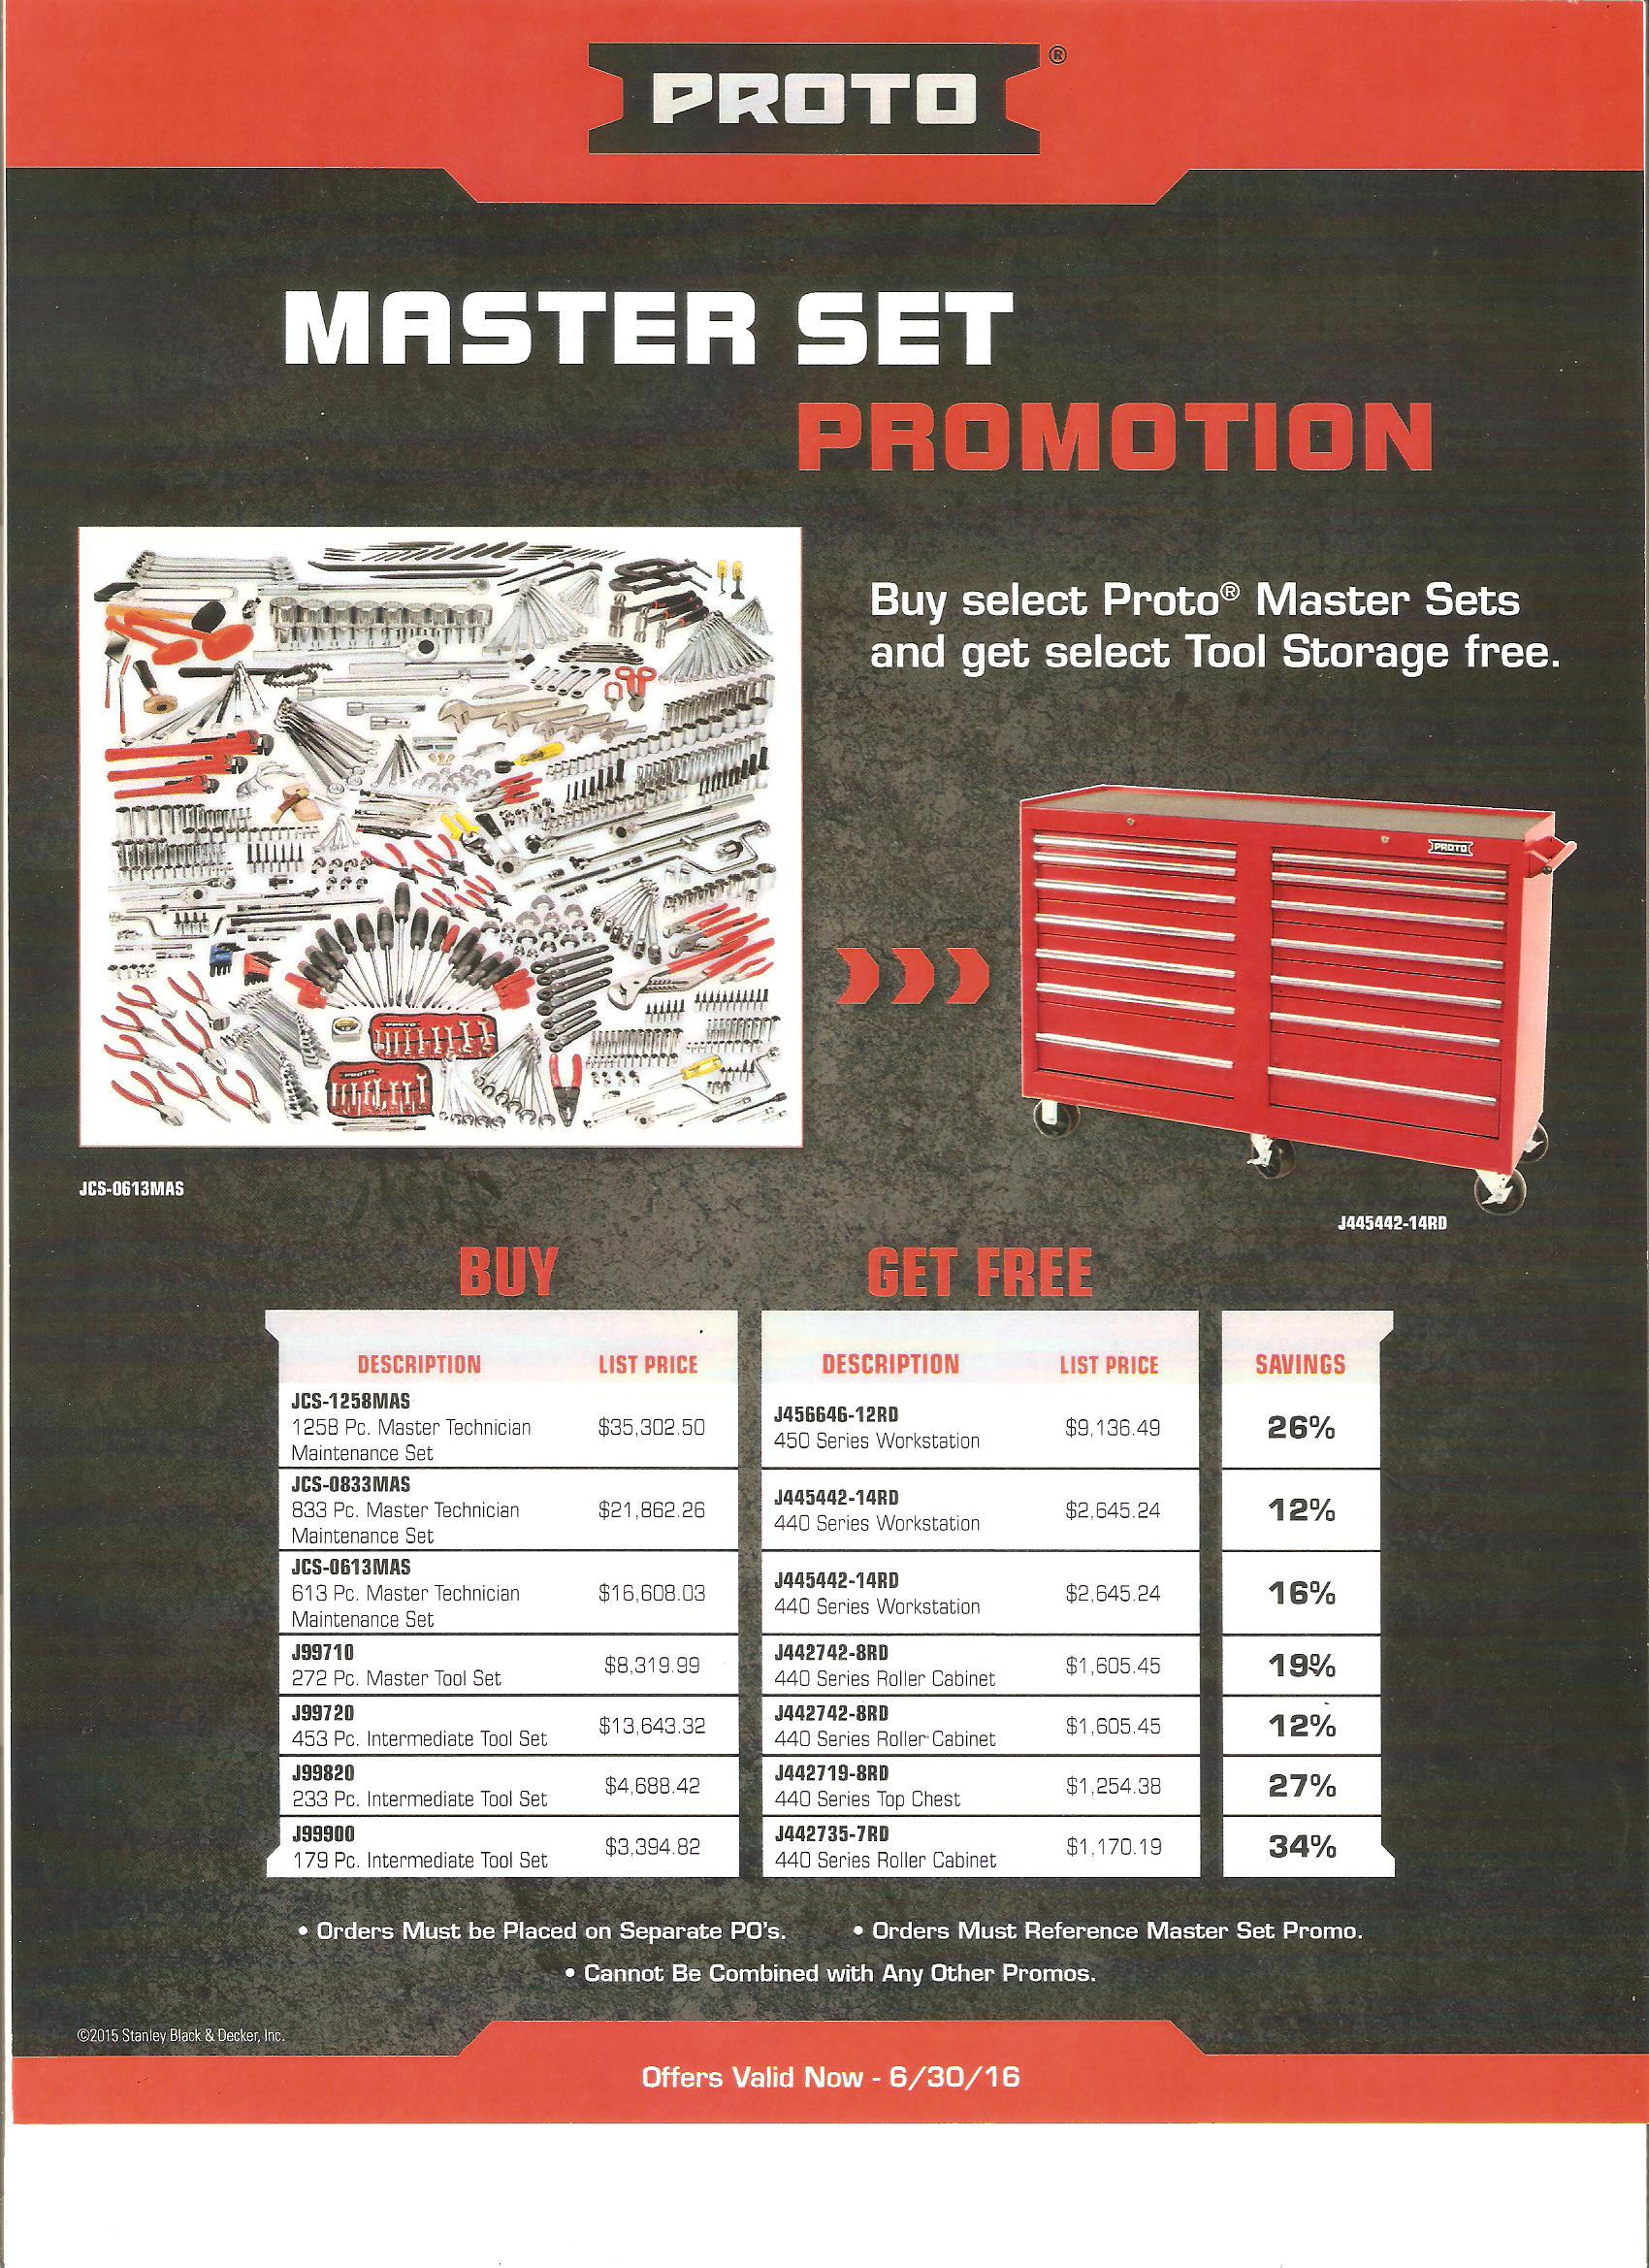 Buy Masterset, Get Workstation Free